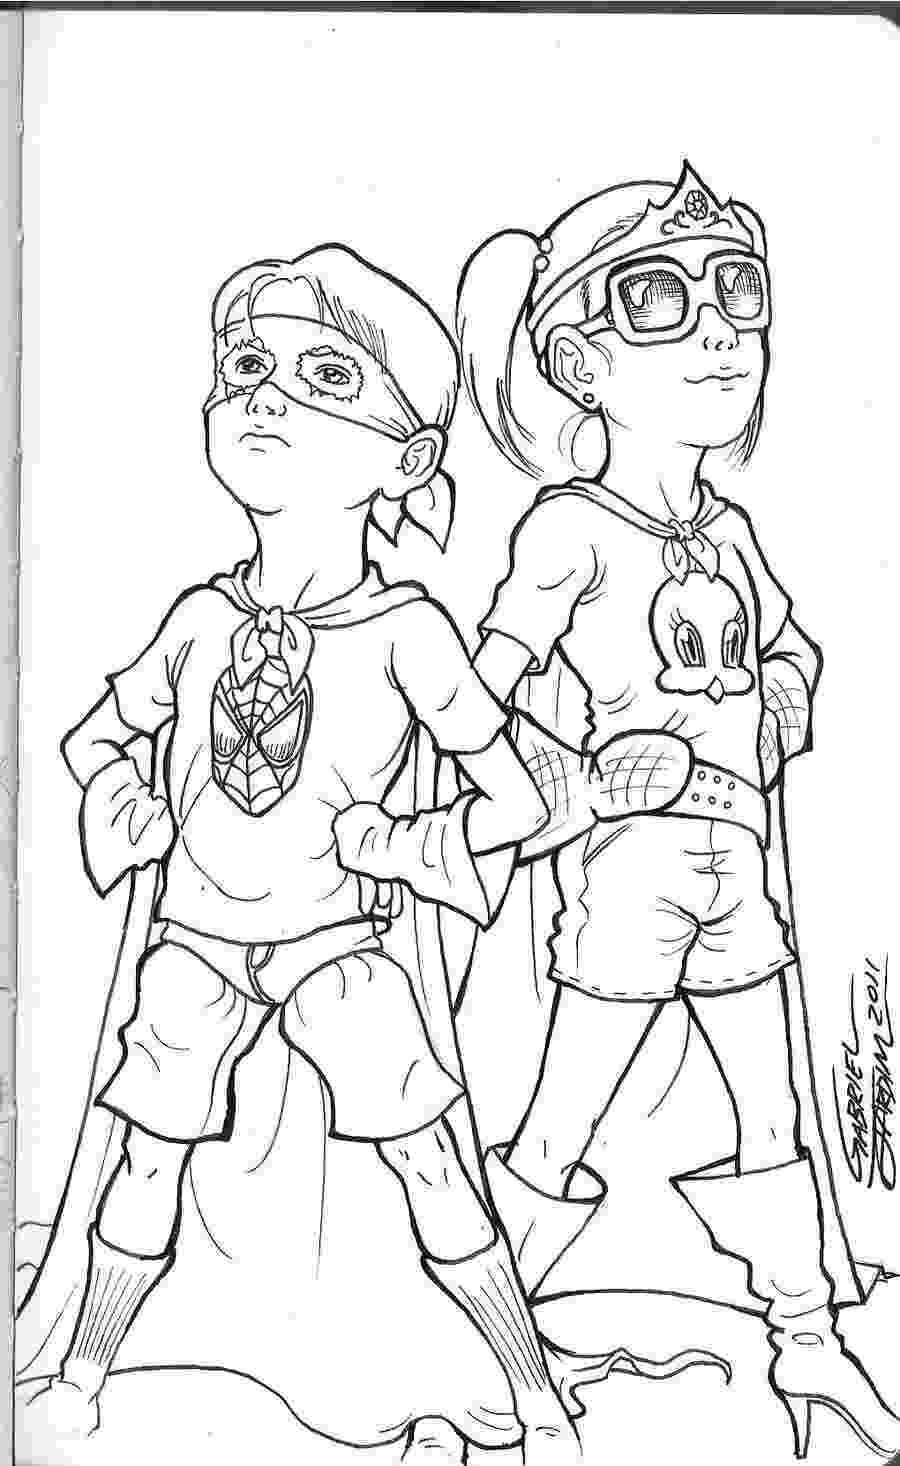 superheroes coloring pages superhero coloring pages to download and print for free superheroes pages coloring